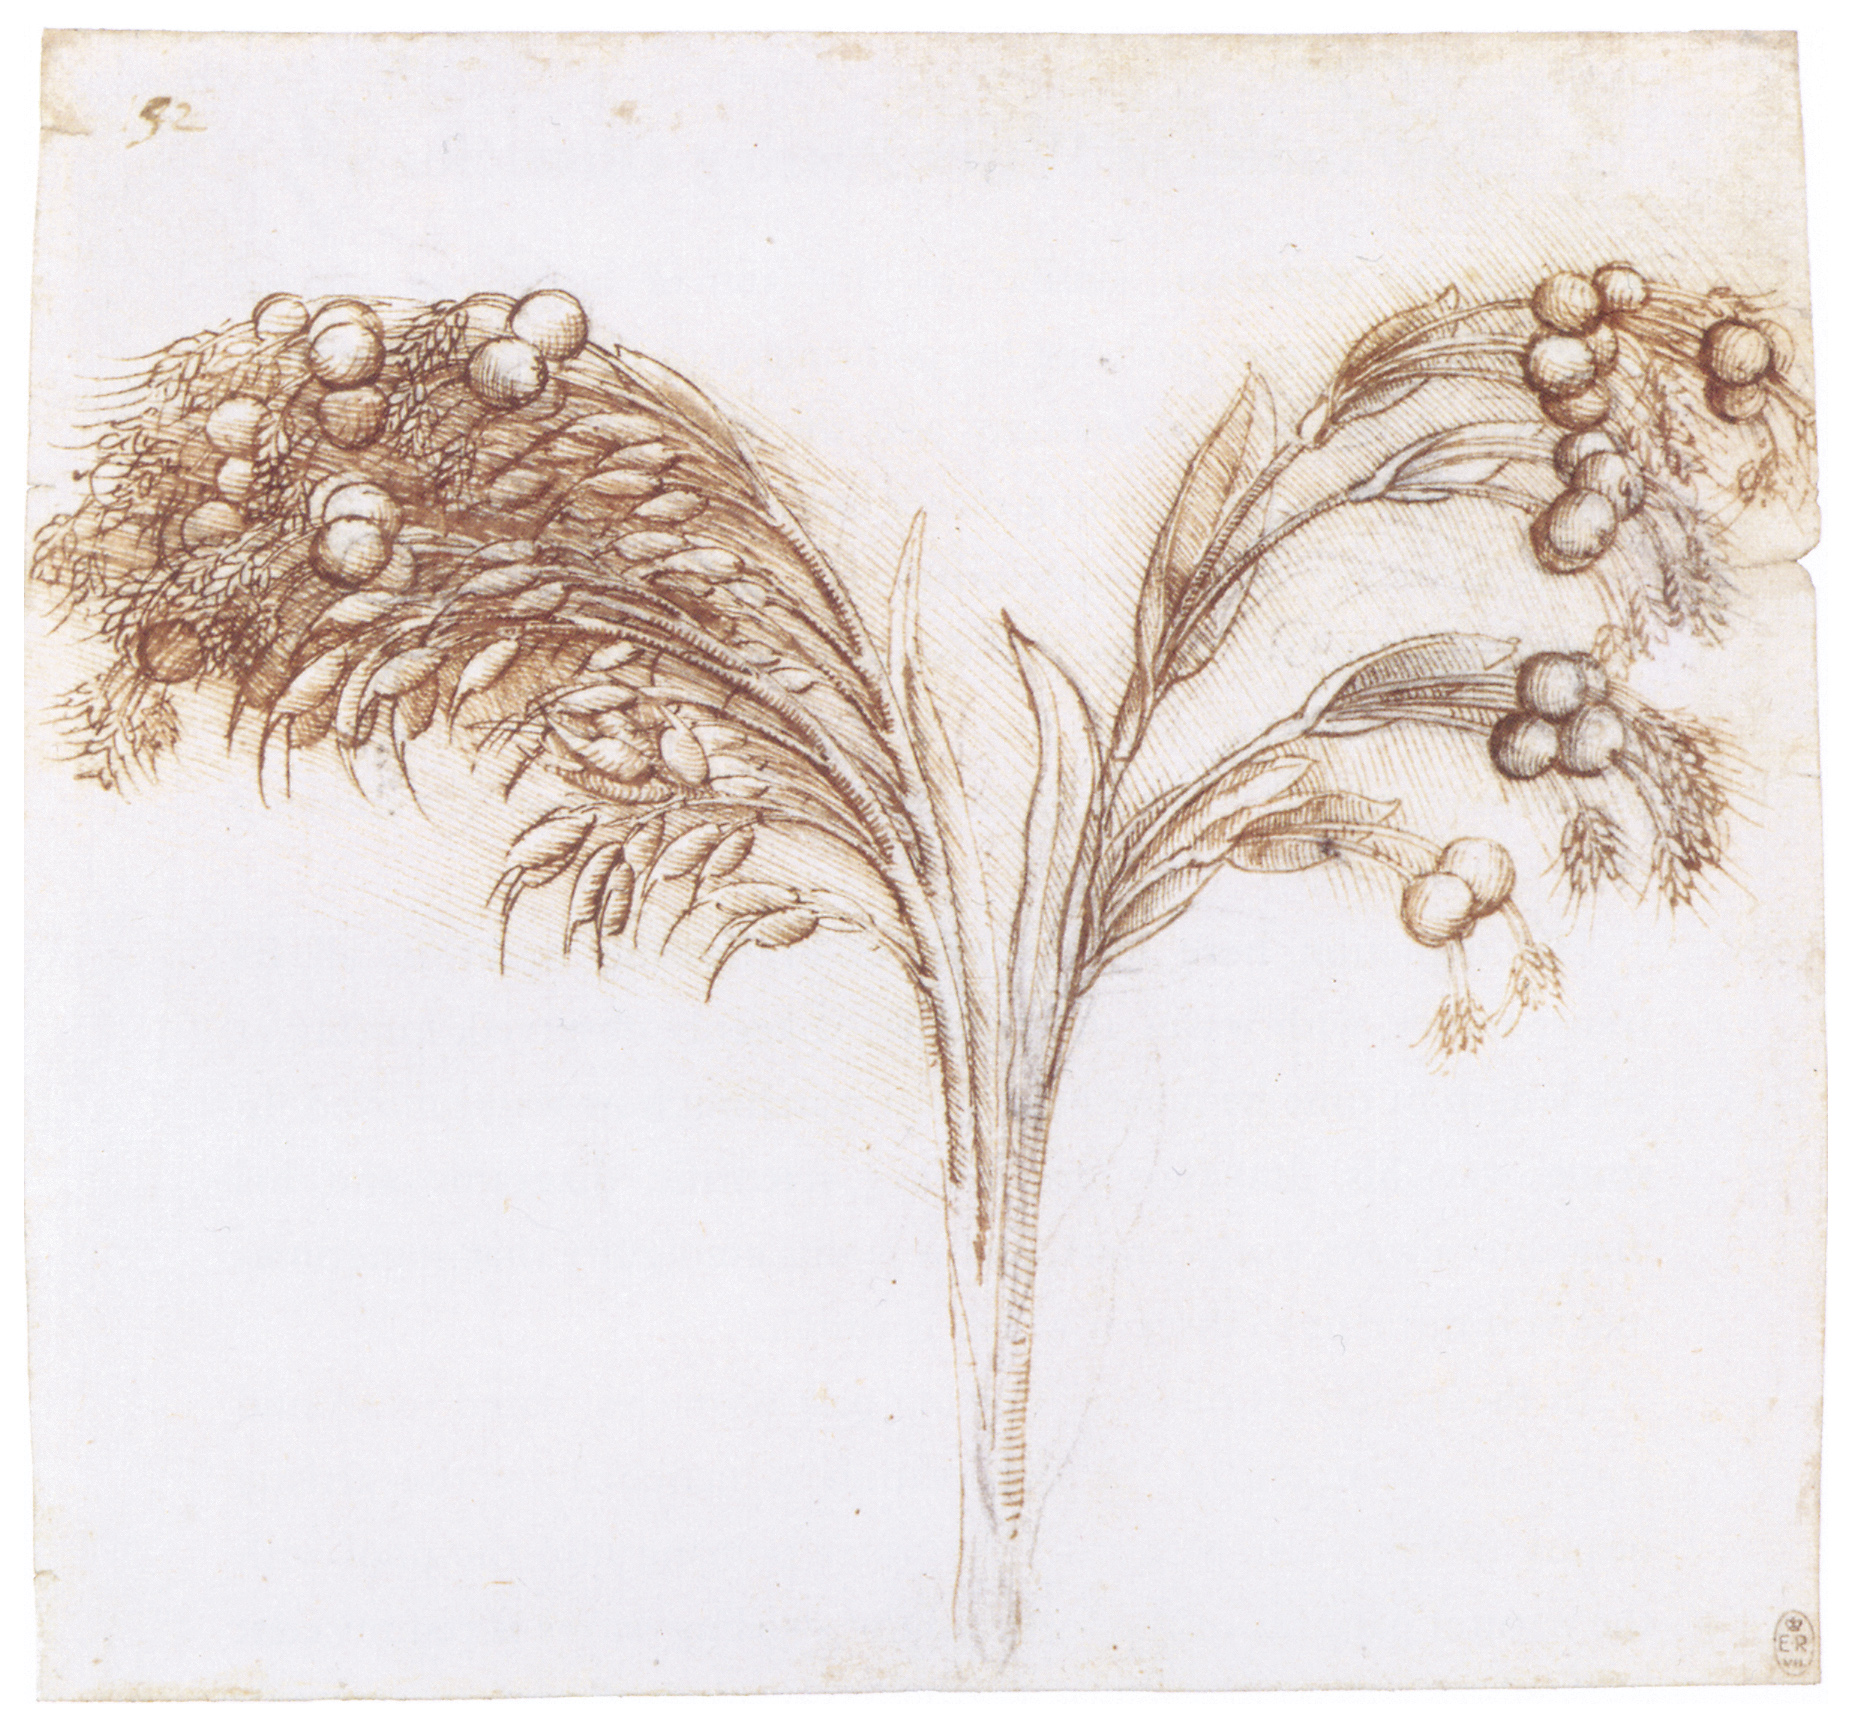 Leonardo da Vinci - Drawings - Plants - 03.JPG